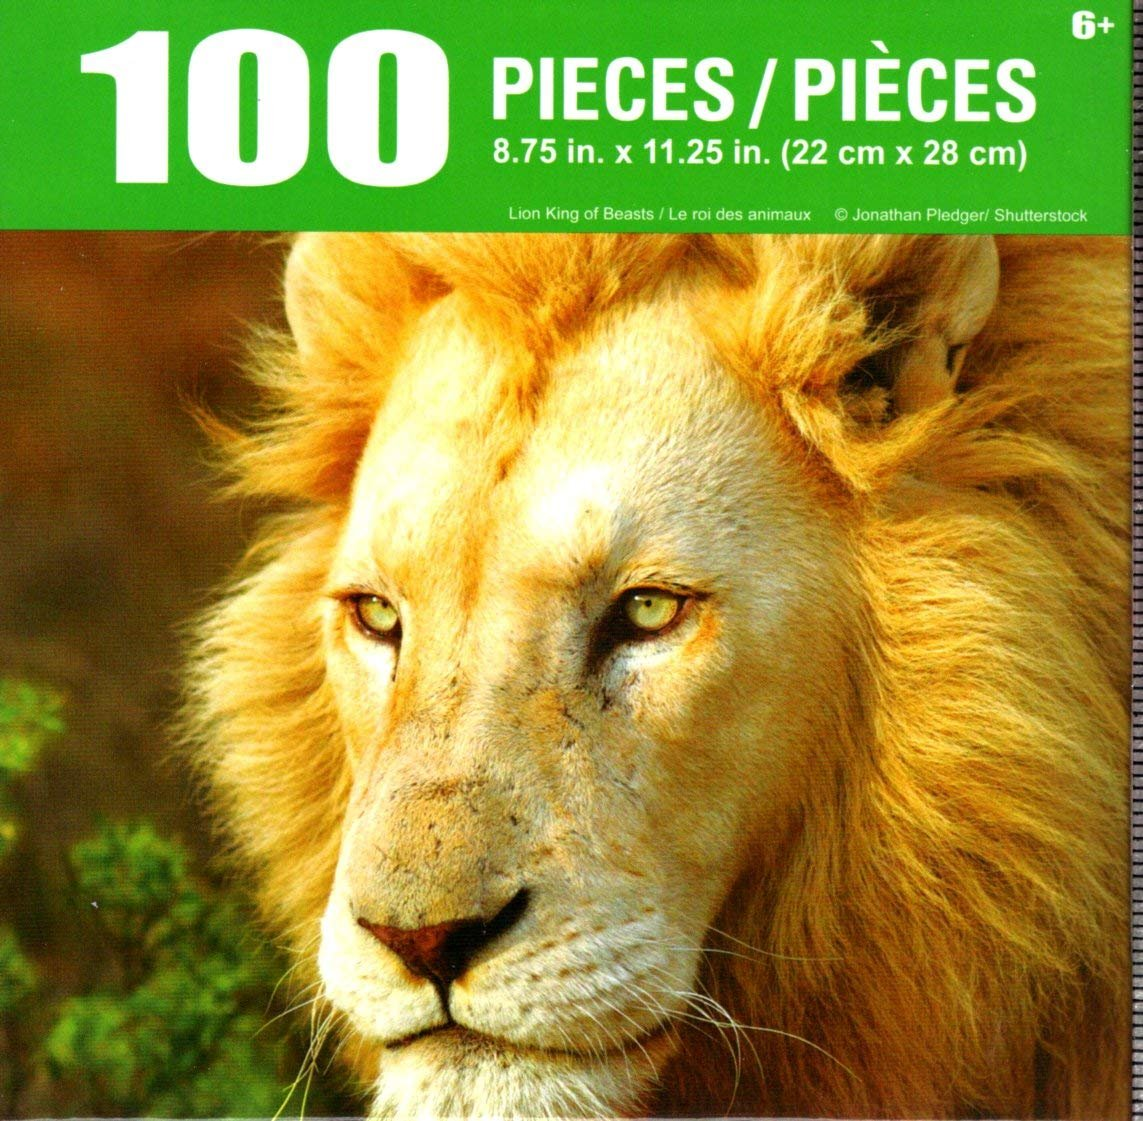 Cra-Z-Art Lion King of Beasts - 100 Piece Jigsaw Puzzle